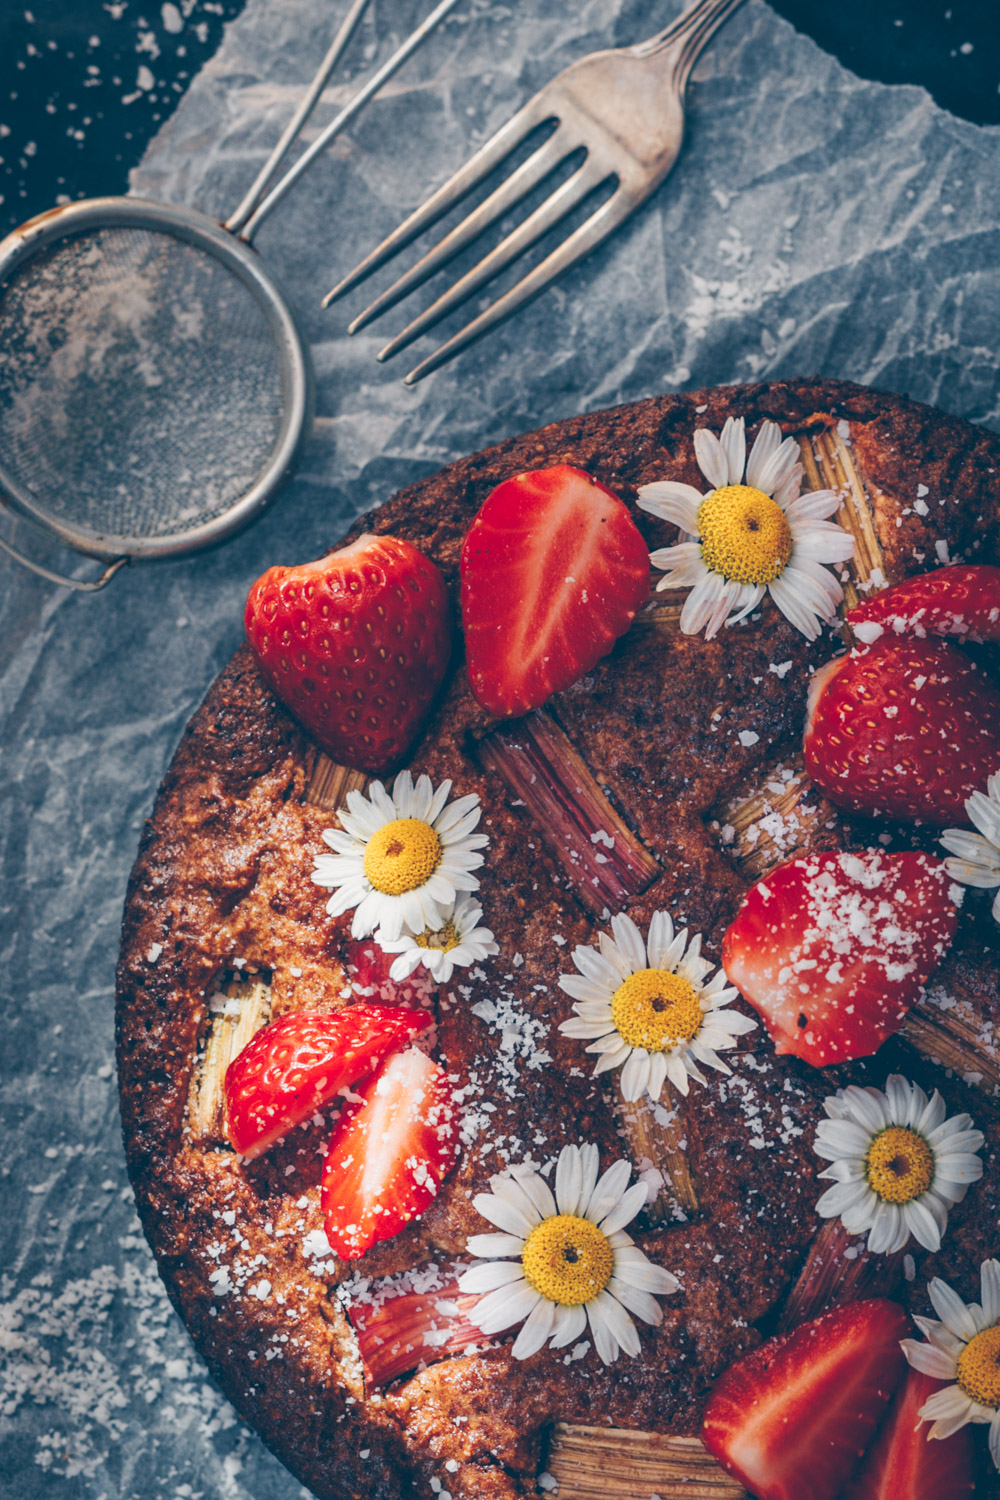 Vegan Rhubarb Almond Cake with fresh Strawberries - A Low-Gluten Recipe by Kati of black.white.vivid.